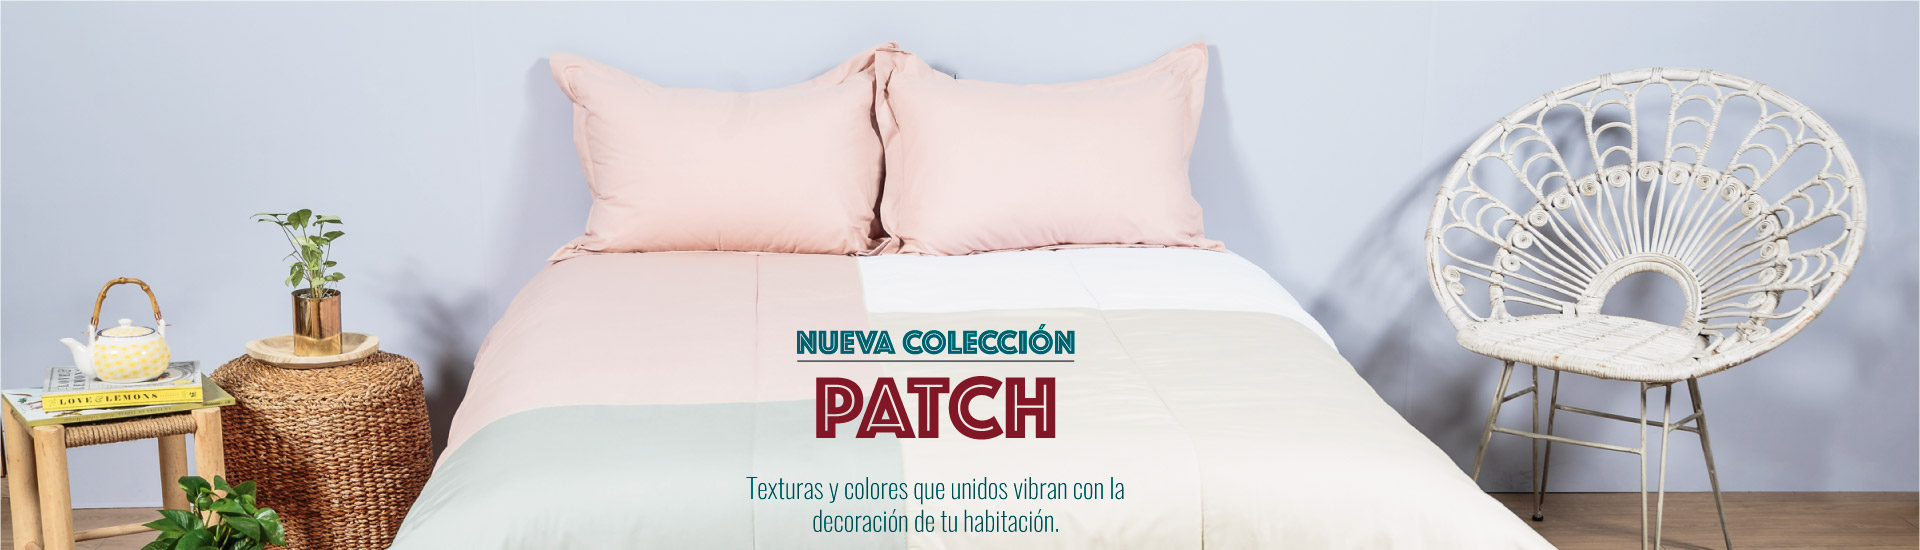 banner-patch